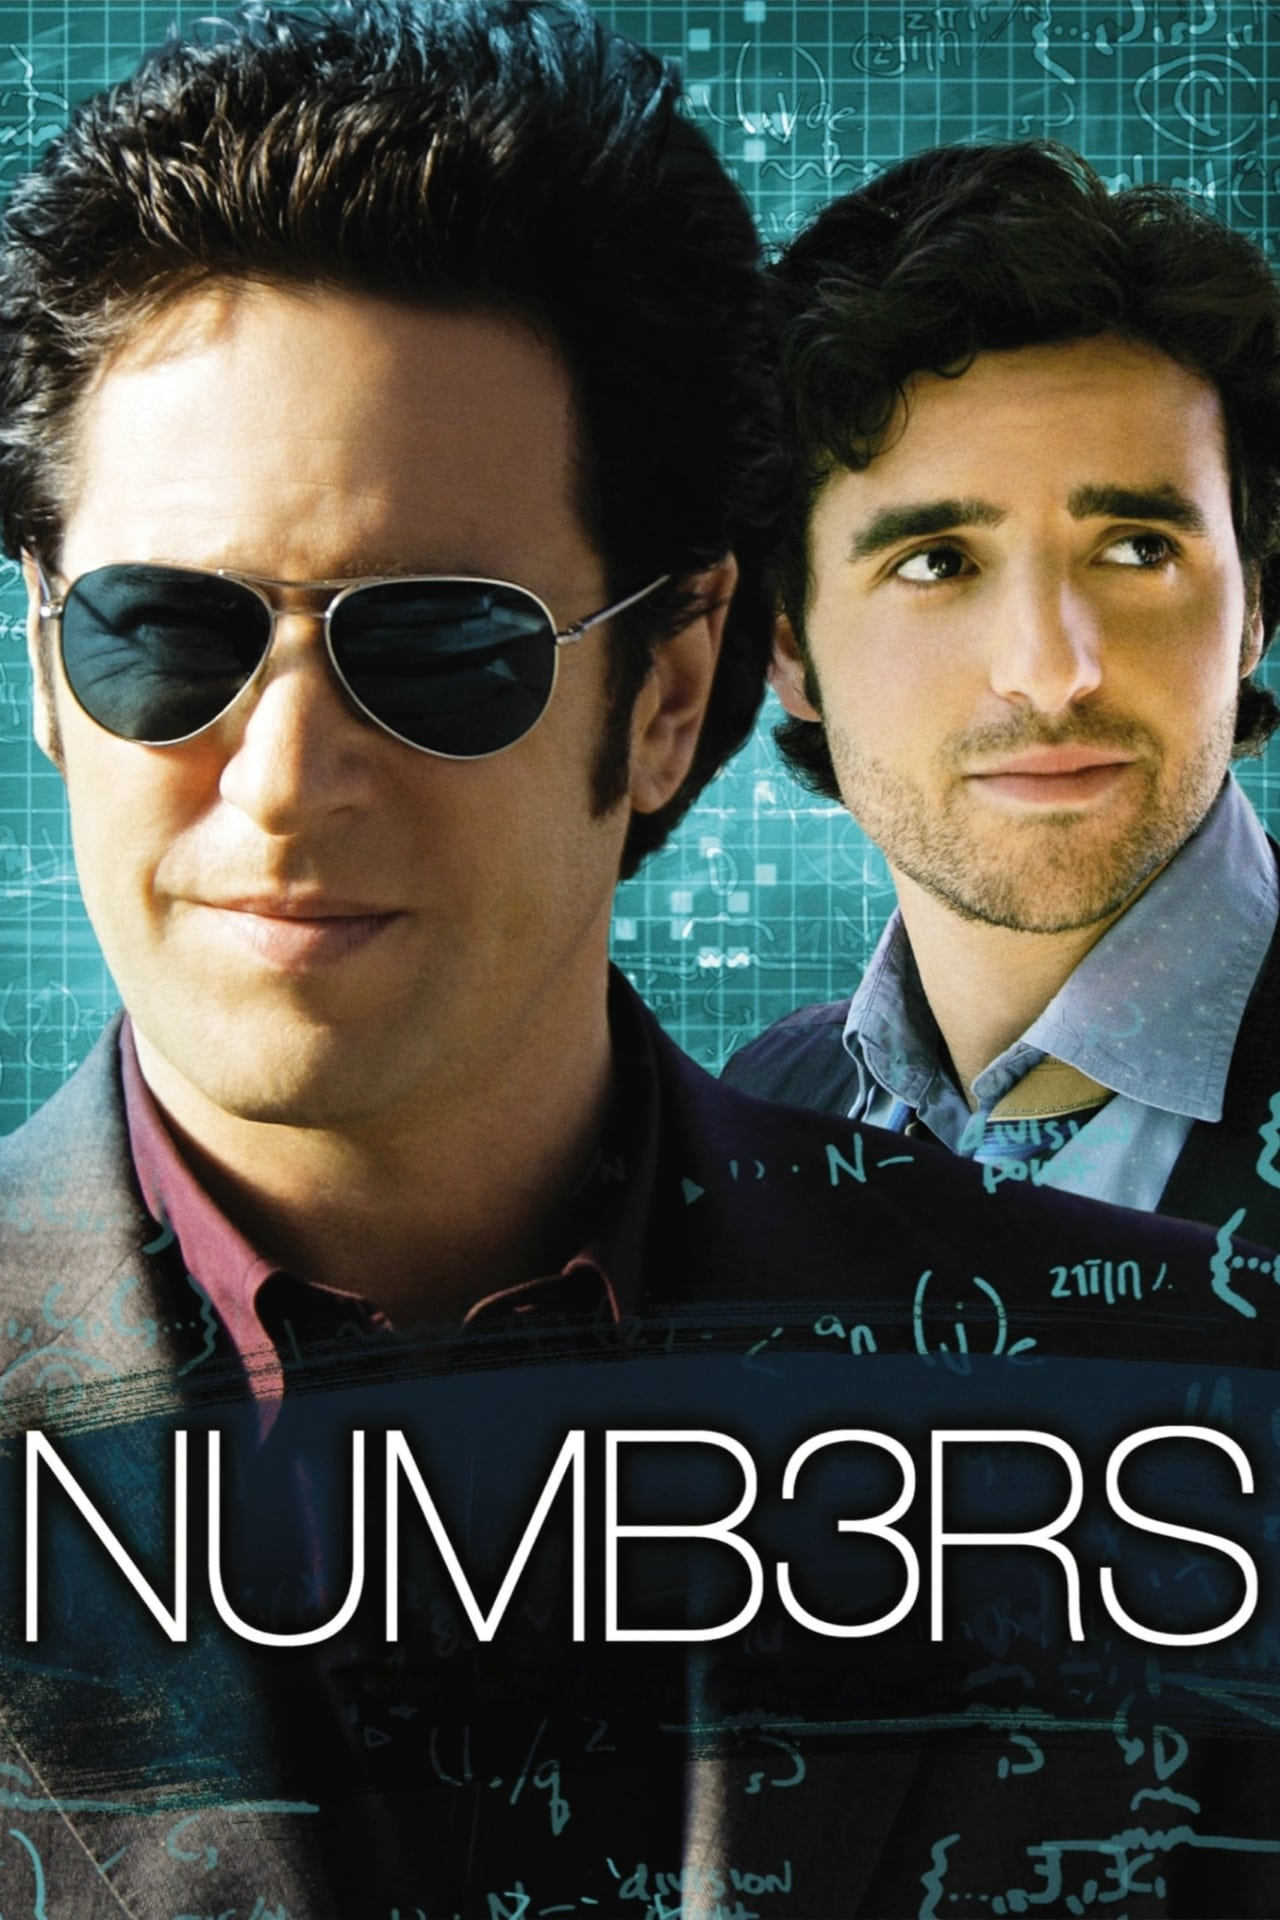 Numb3rs (season 4)